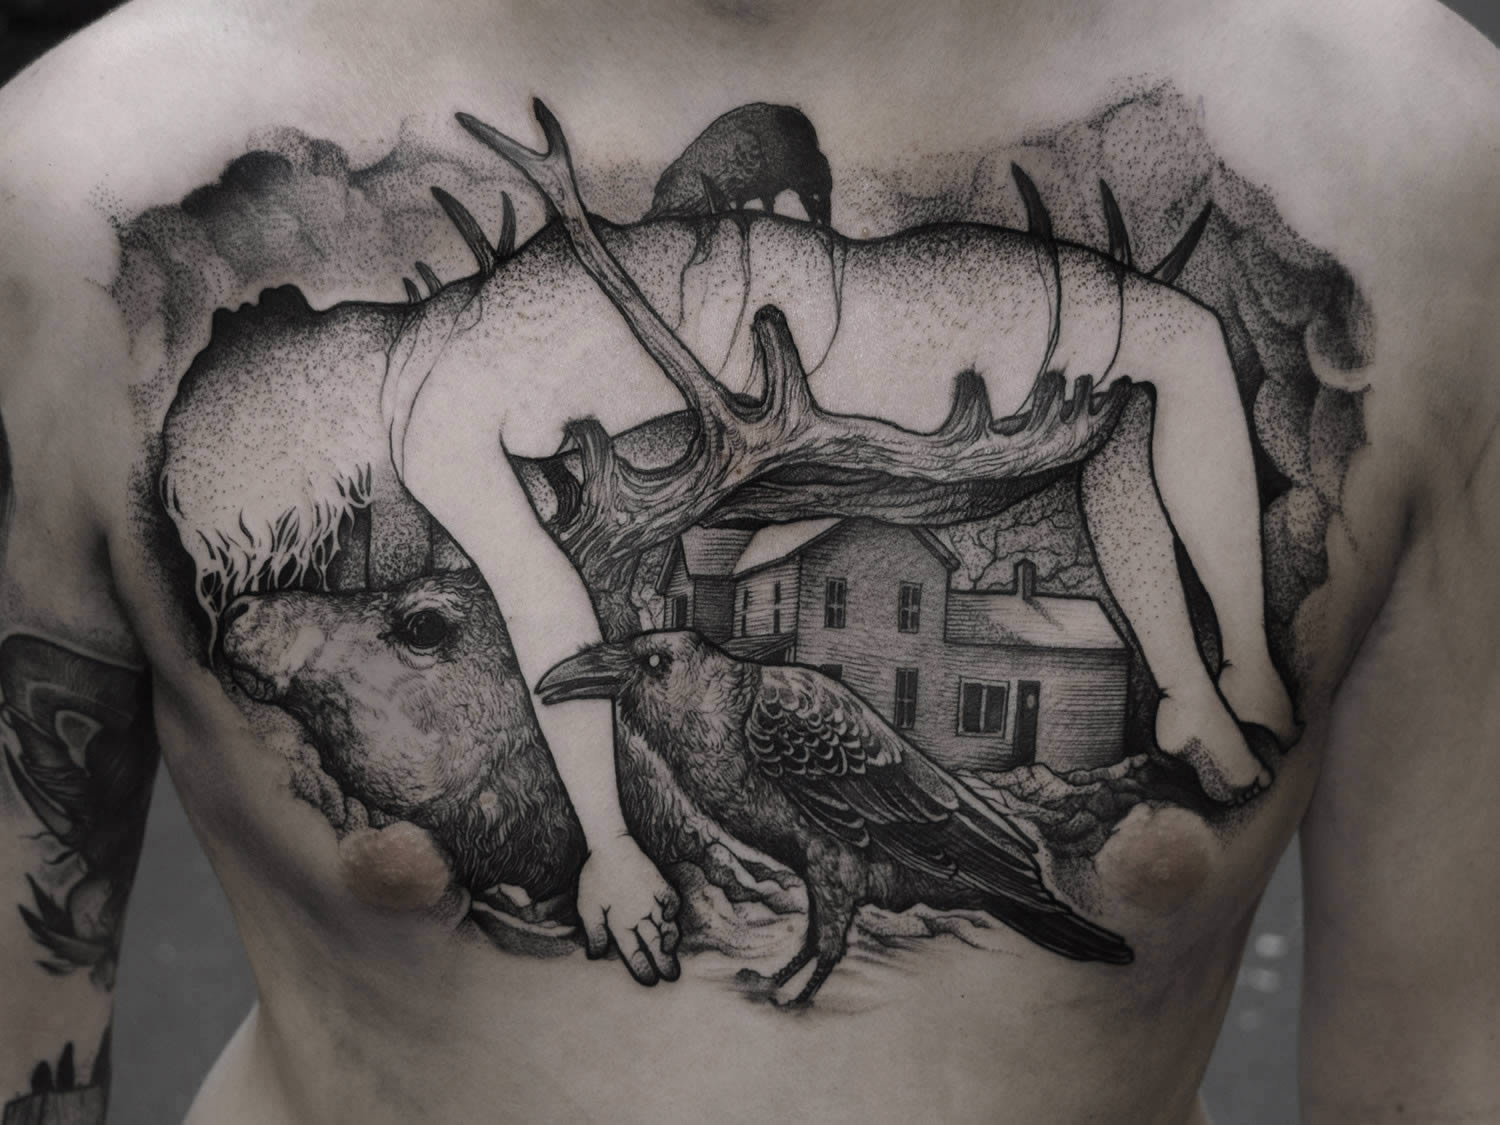 back tattoo - girl impaled on antlers